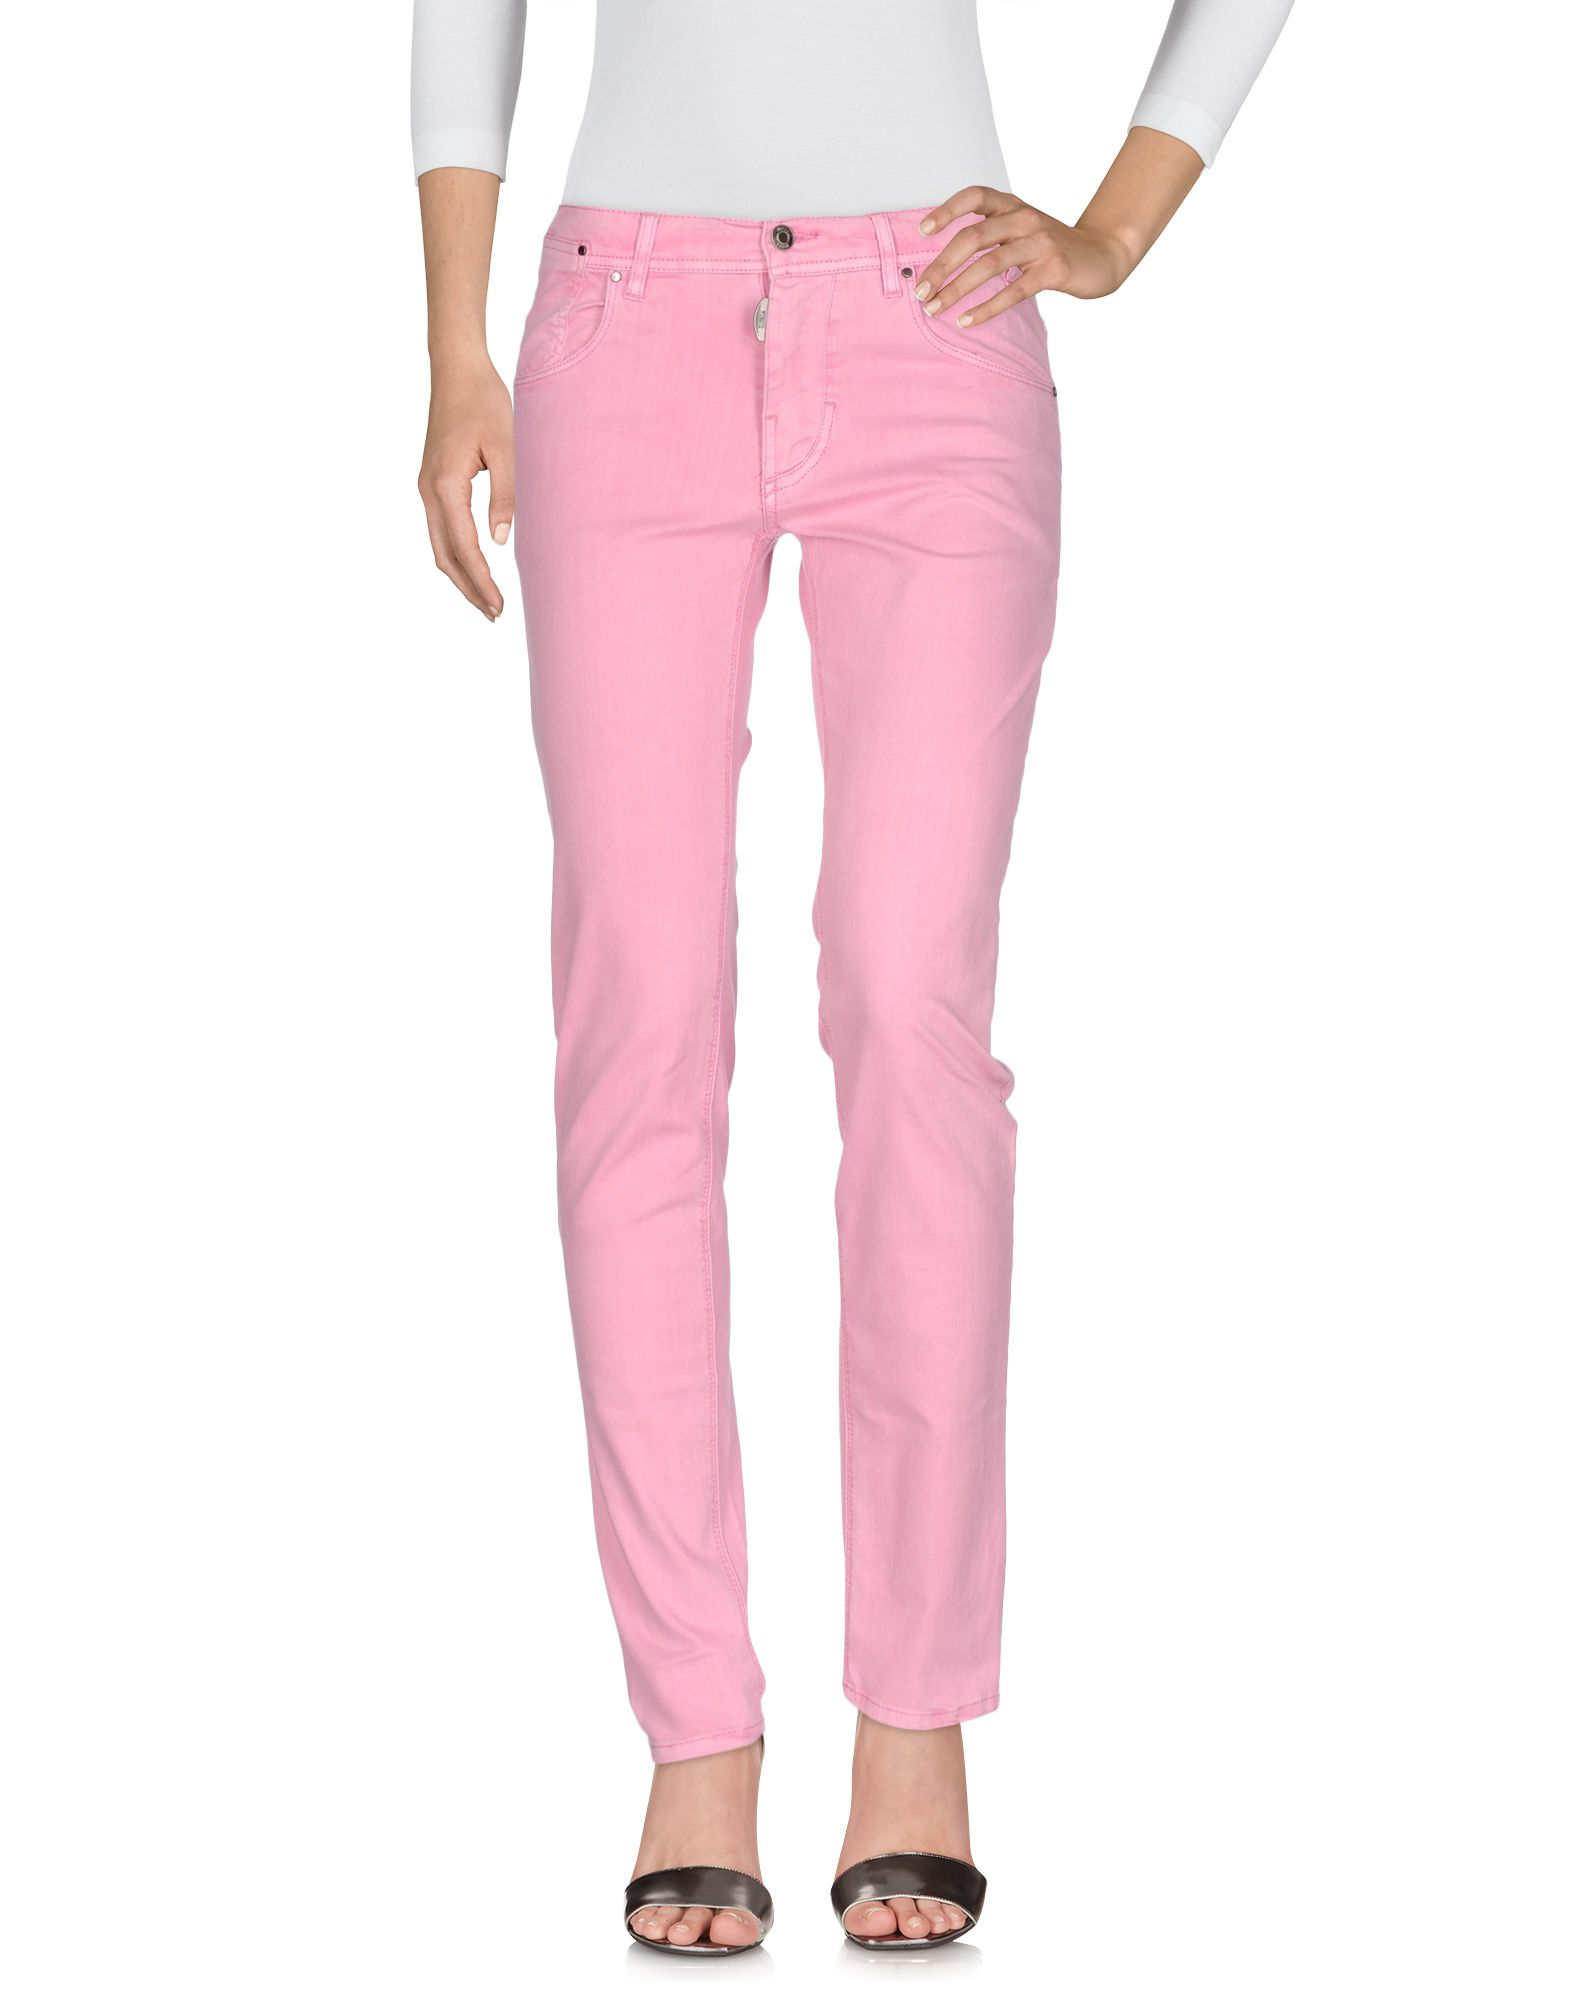 ANTONY MORATO Denim Pants in Pink